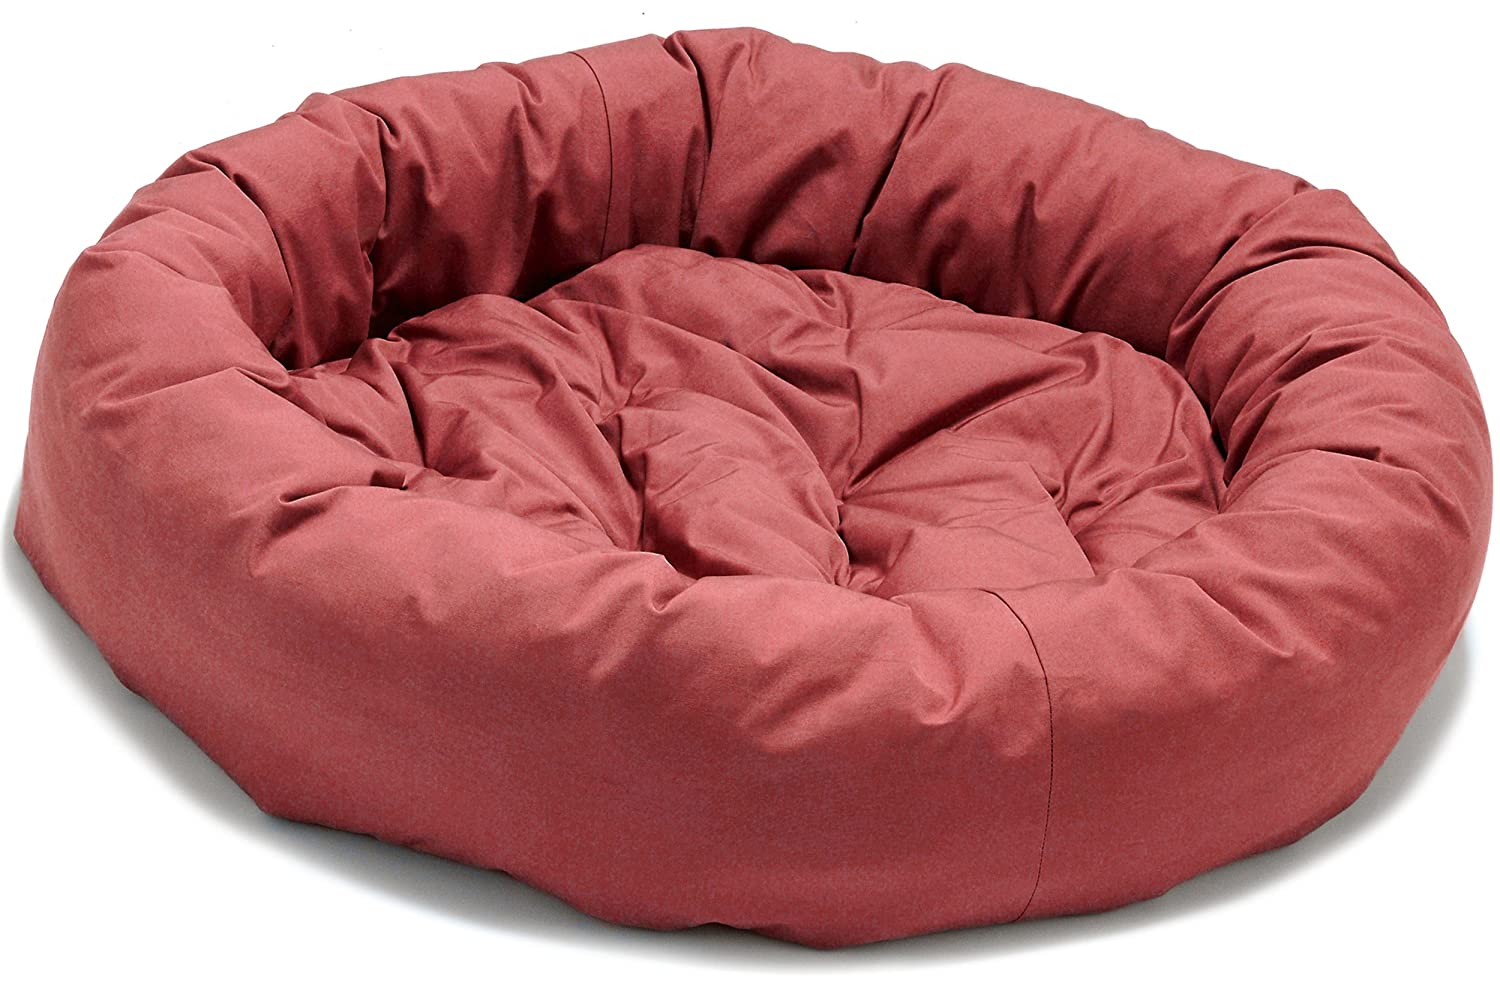 S Dog Gone Smart Donut Bed with Repelz-It, Small, Red